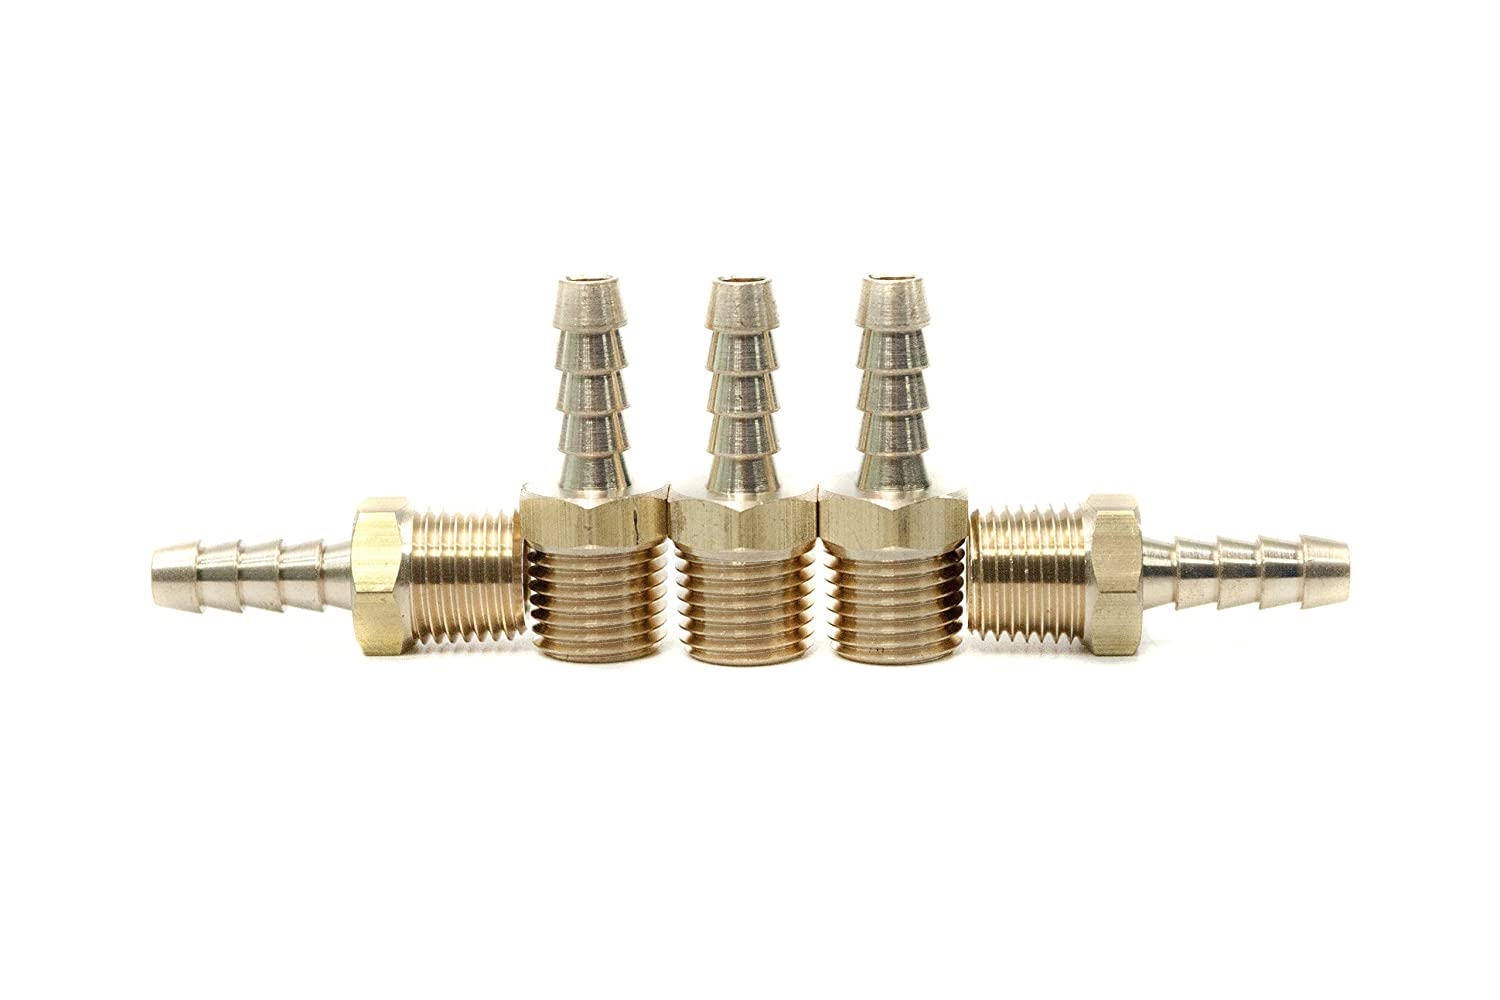 LTWFITTING Brass Fitting Coupler 1/4-Inch Hose Barb x 1/4-Inch Male NPT Fuel Gas Water(Pack of 5)